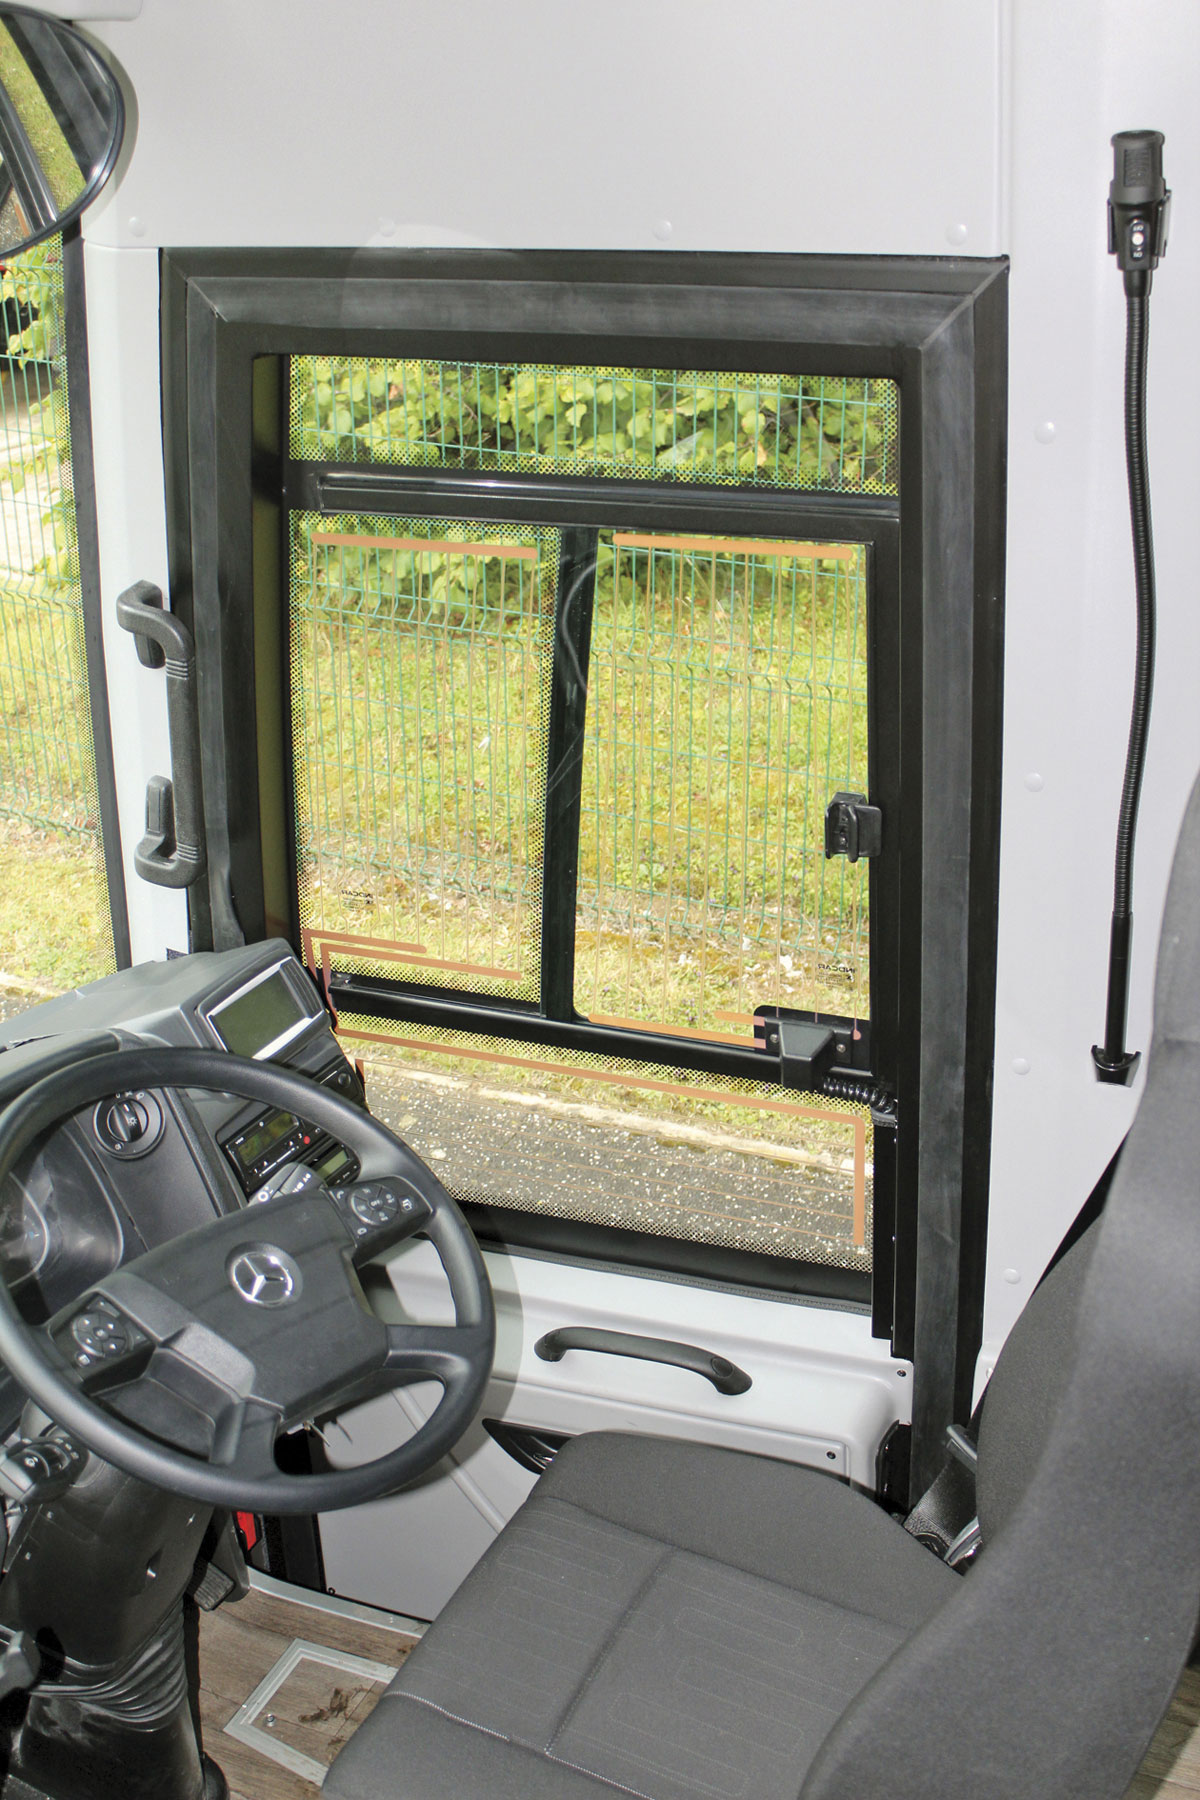 One of the changes introduced for the UK is a redesigned driver window that gives a clearer view. It is also heated